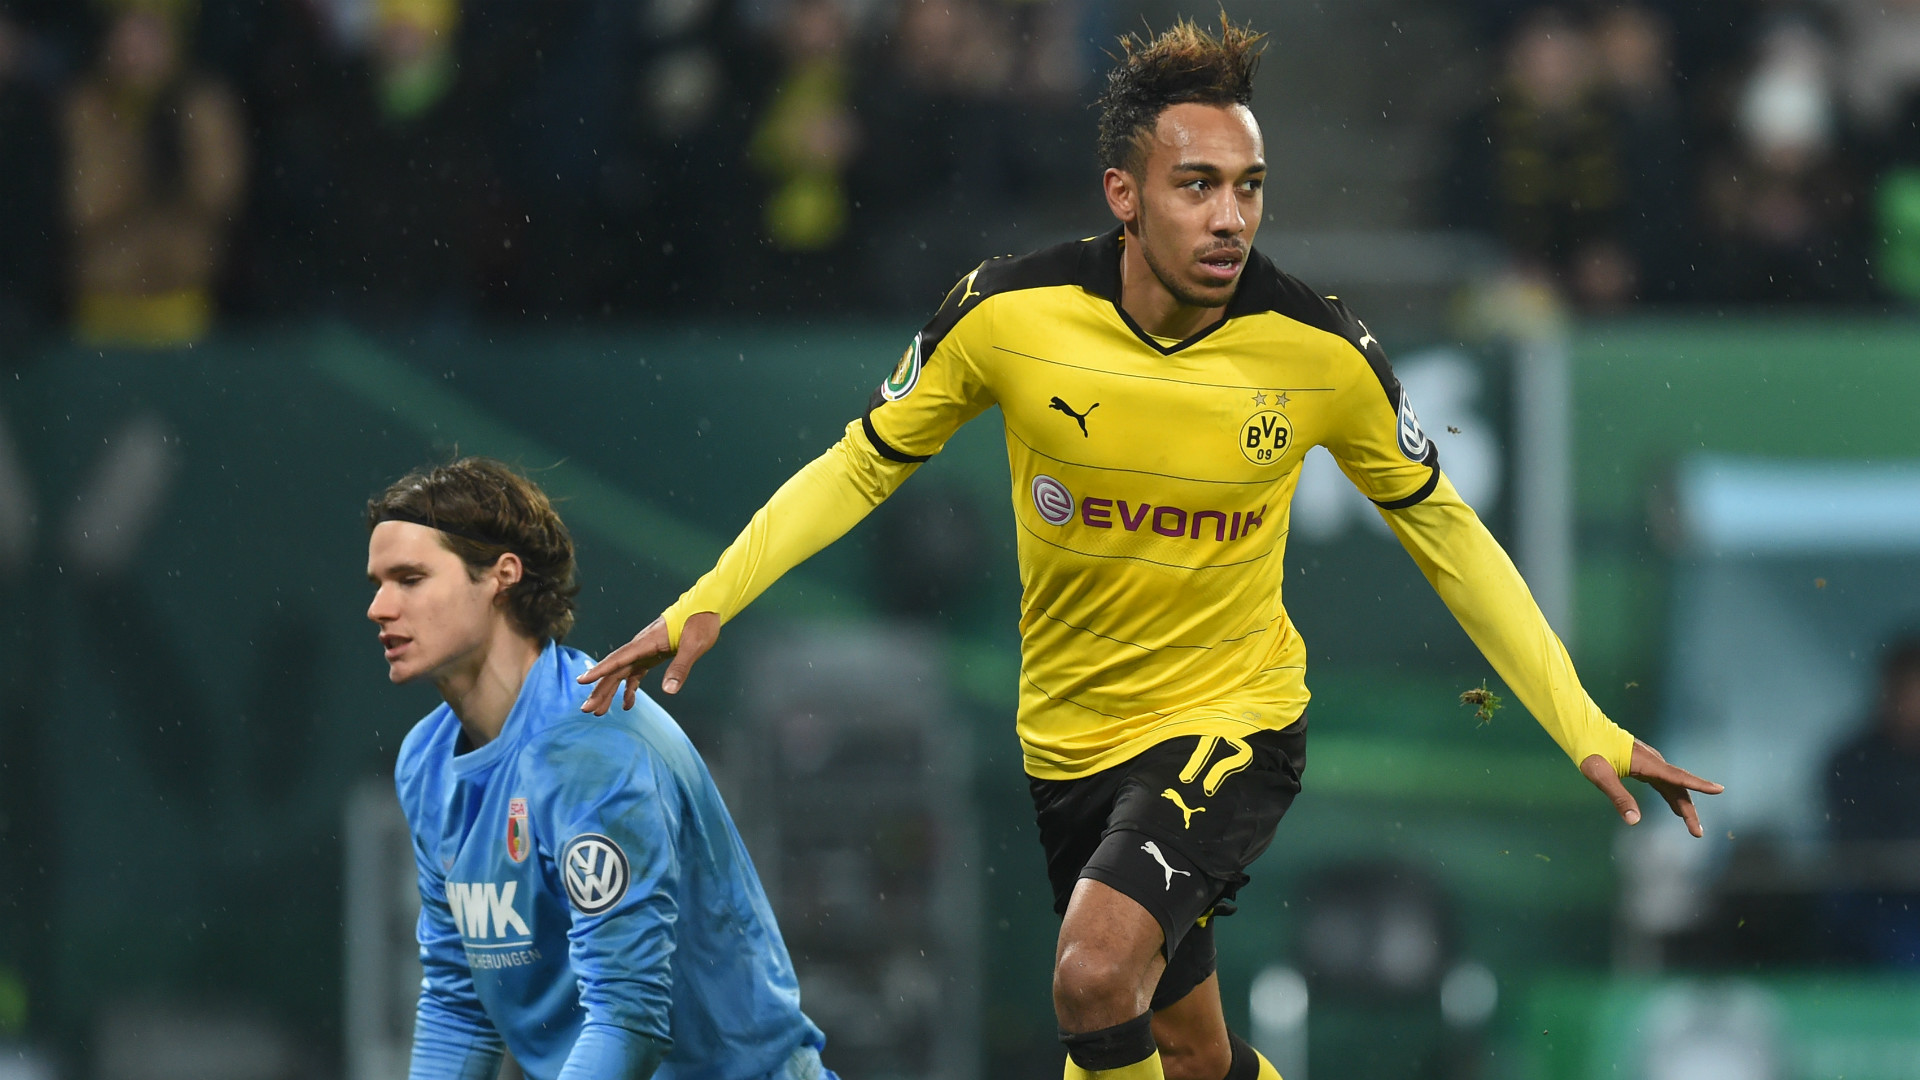 Video: Augsburg vs Borussia Dortmund